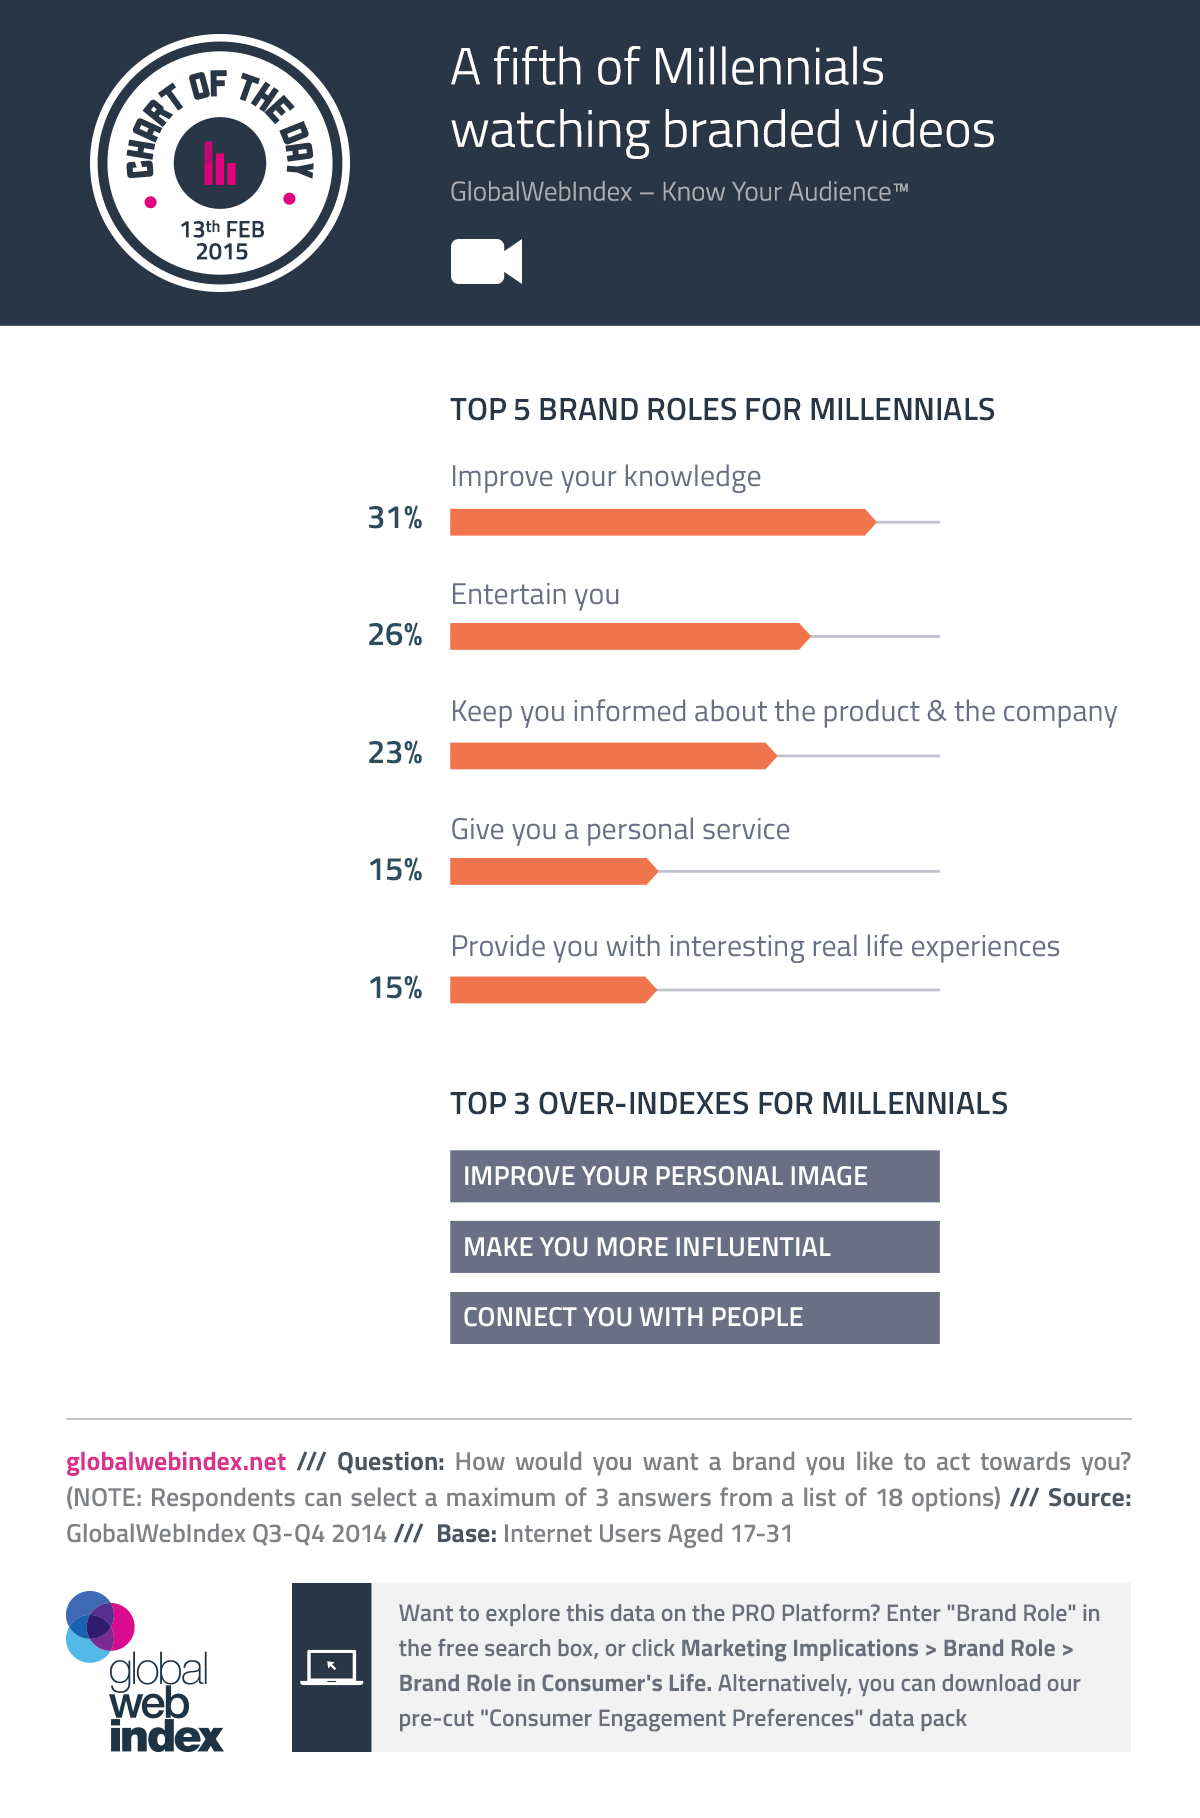 13th-Feb-2015-A-fifth-of-Millennials-watching-branded-videos